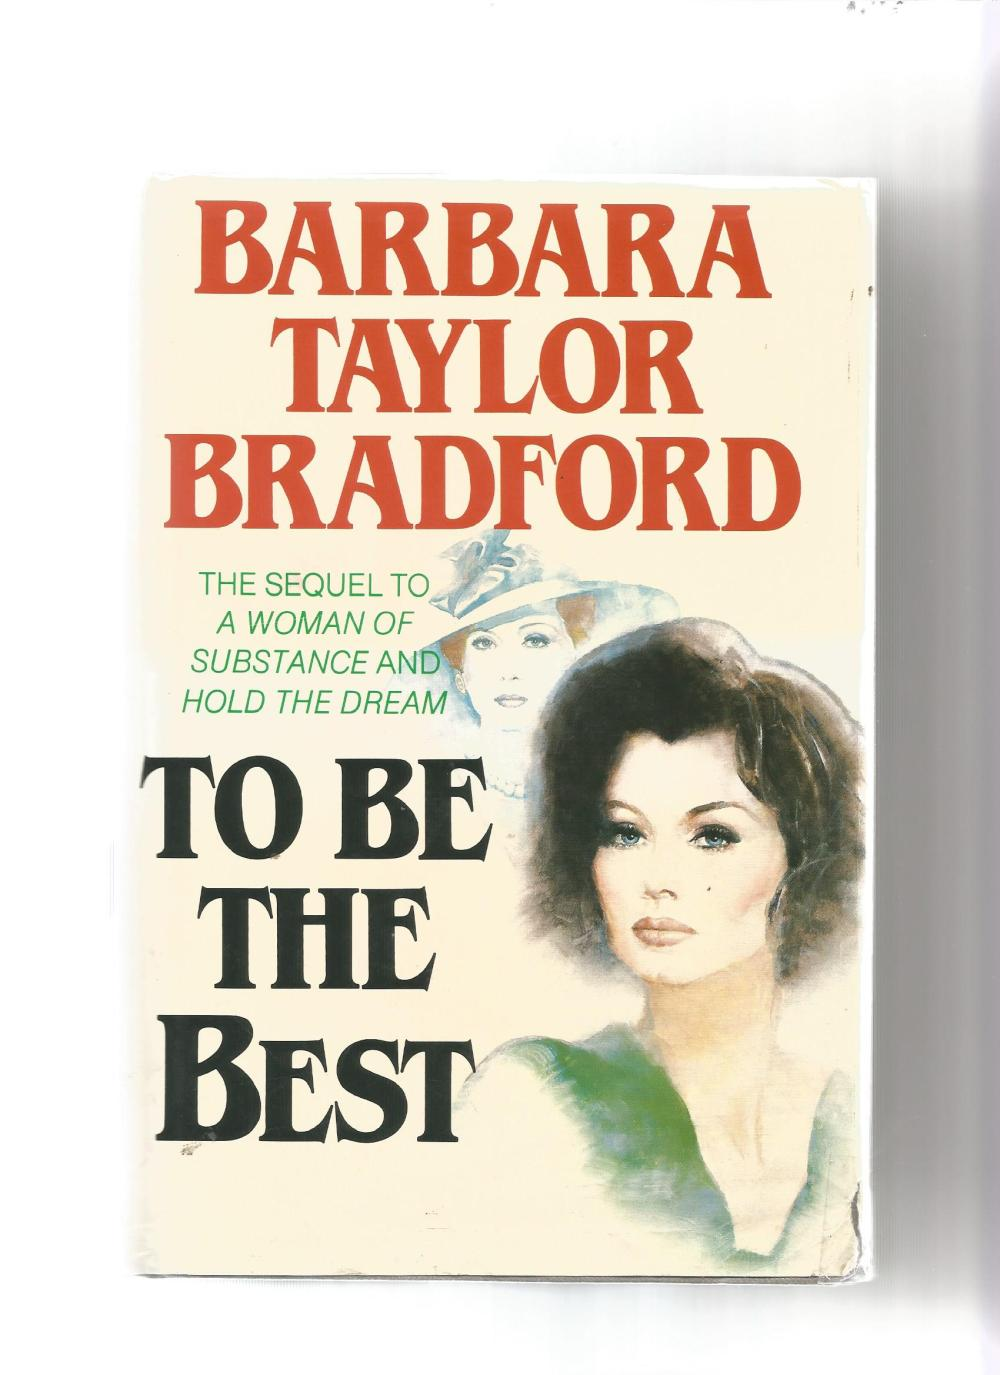 Barbara Taylor Bradford signed first edition of To be the best hardback book. Signed on inside title